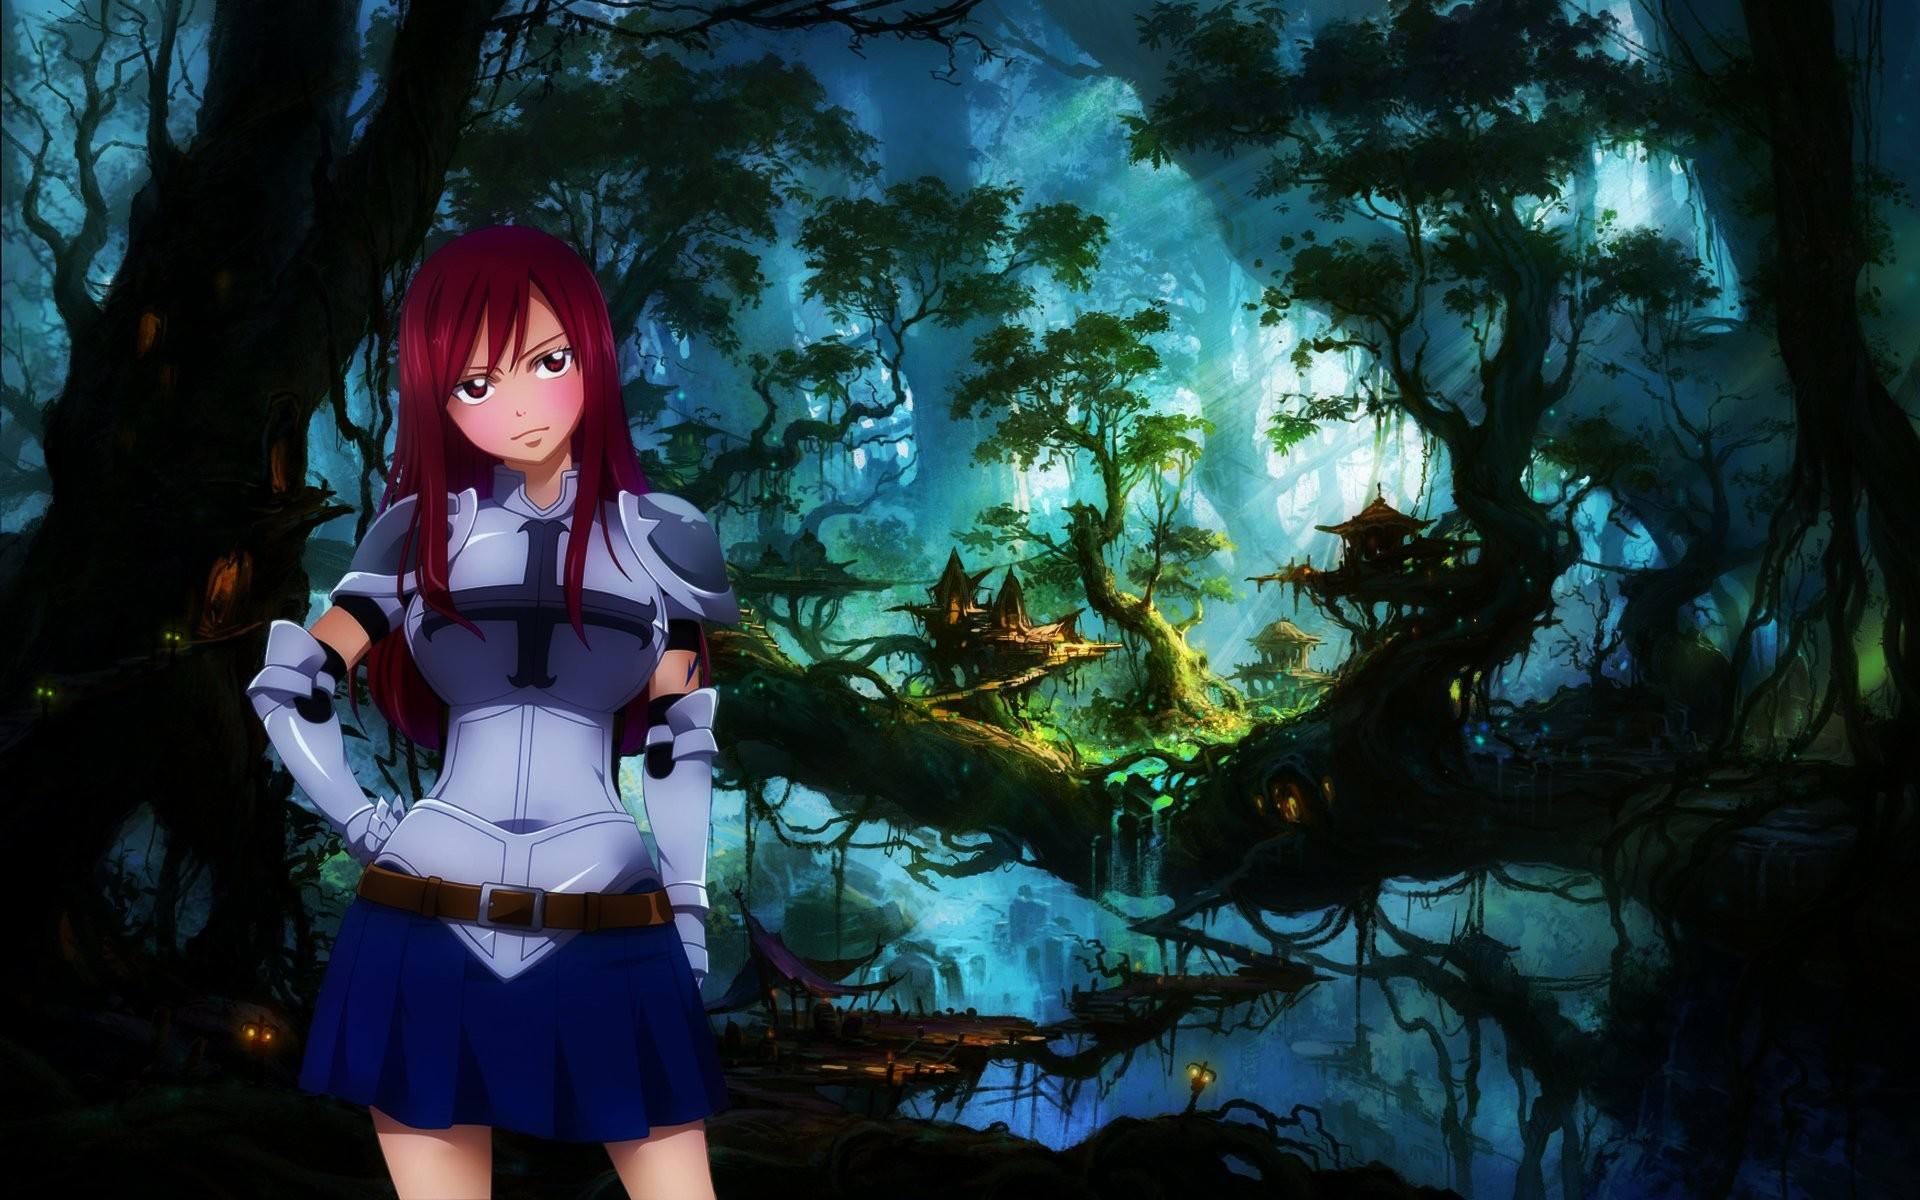 1920x1200 Erza Scarlet Armor Wallpaper For Iphone